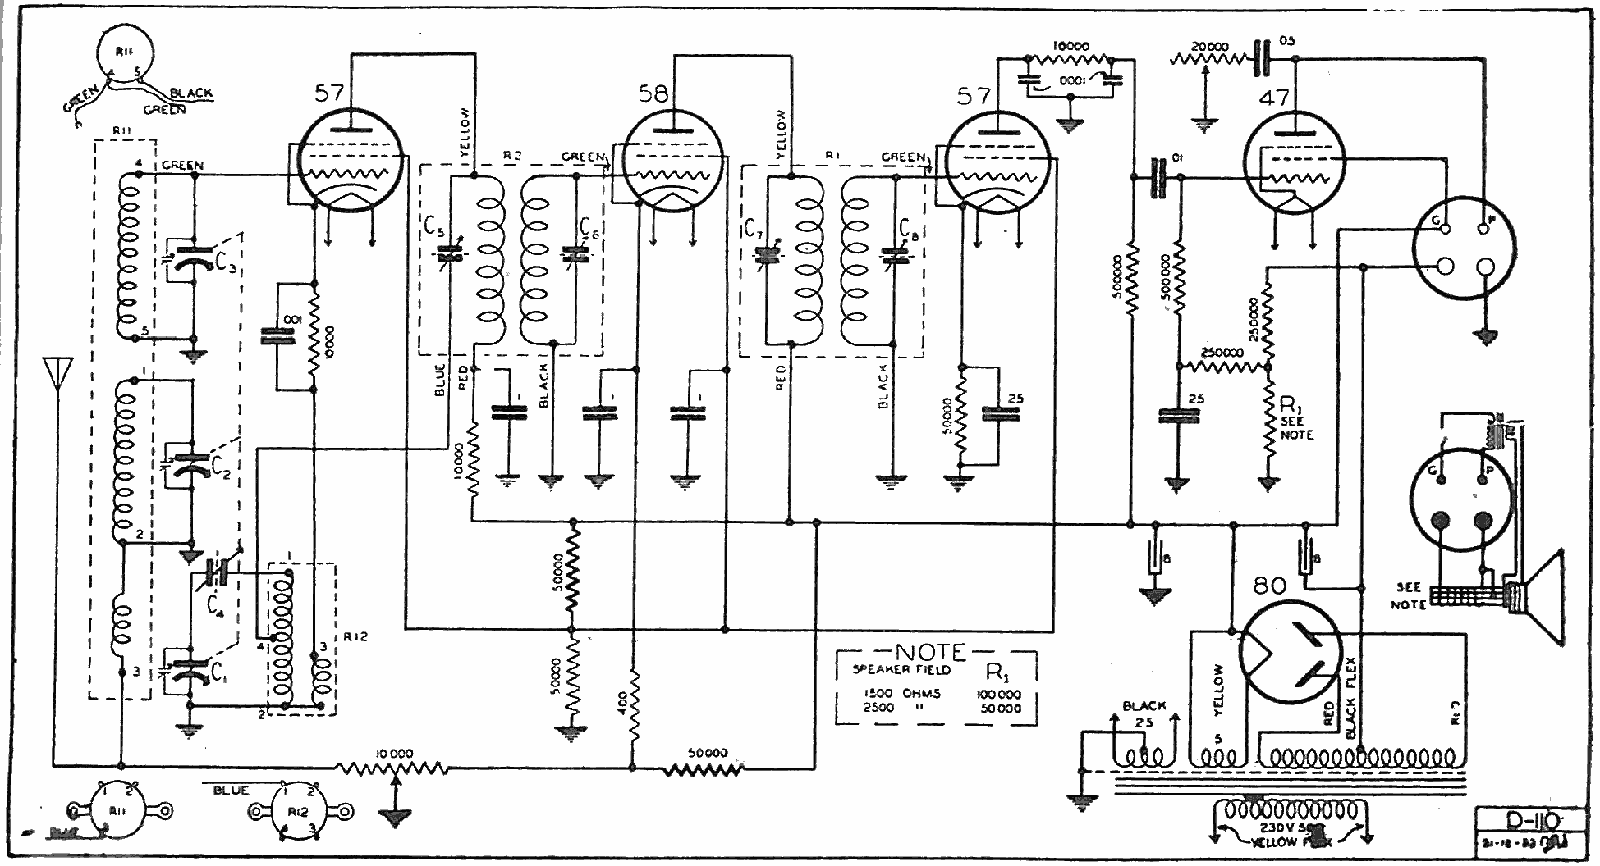 1932 Courtenay 5C and 103 Schematic